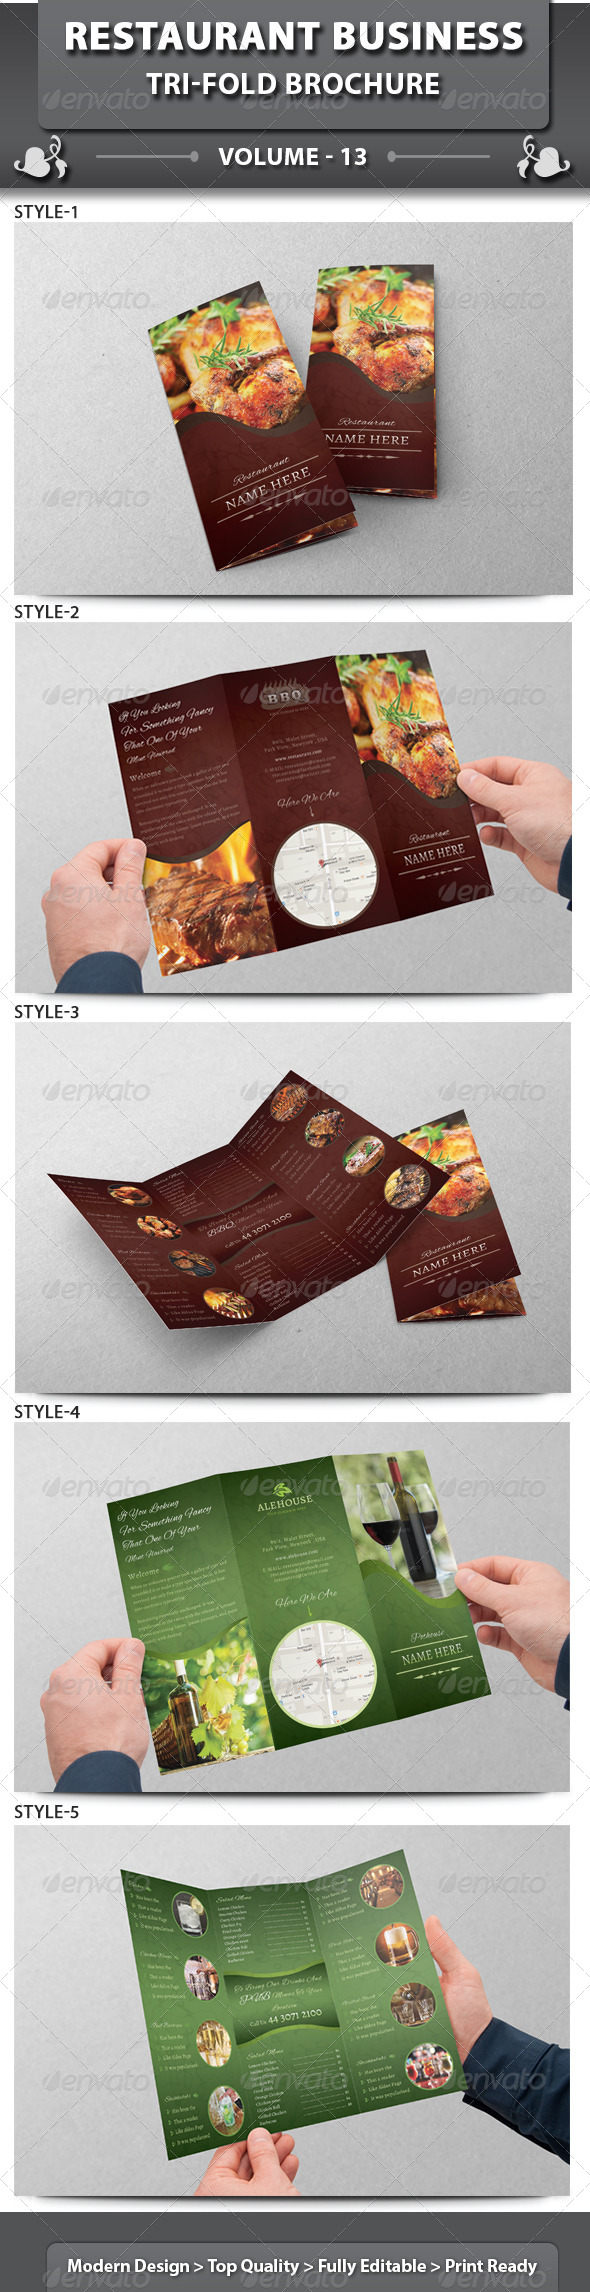 Restaurant Business Tri-fold Brochure | Volume 13 - Corporate Brochures